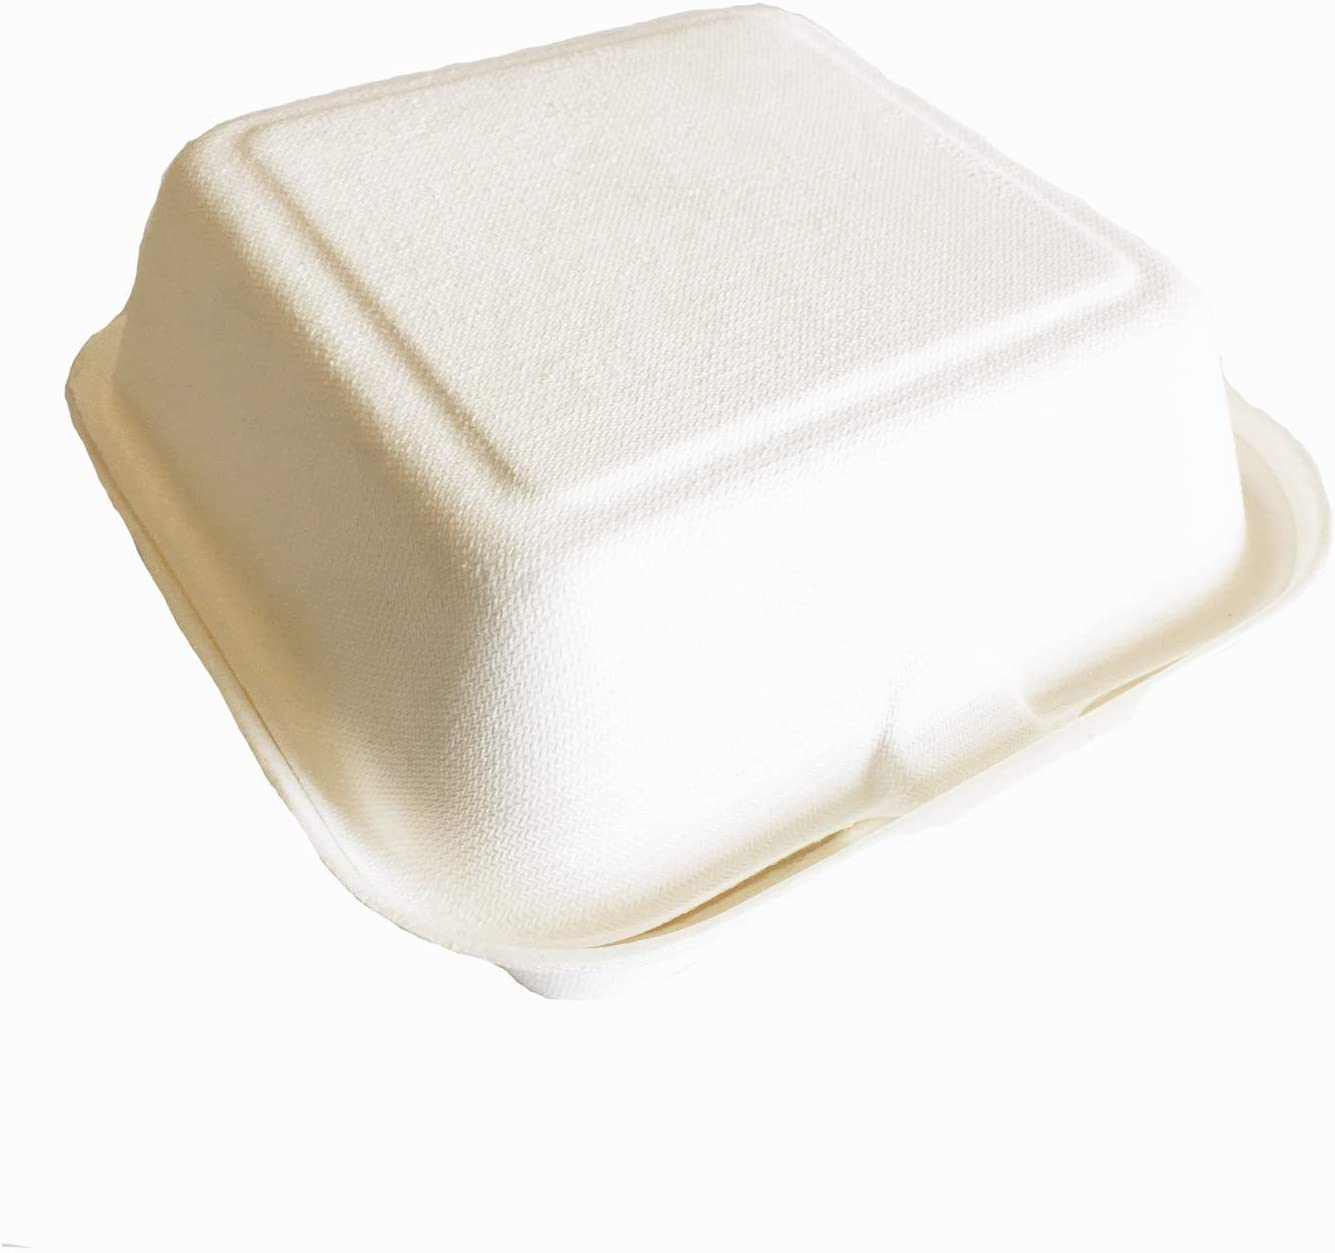 [6-Inch] 125 Pack Organic Premium Compostable Hinged Clamshell Hamburger Box Paper Container Natural Disposable Eco-Friendly Planted-Based For Picnic, Party, Camping (White)